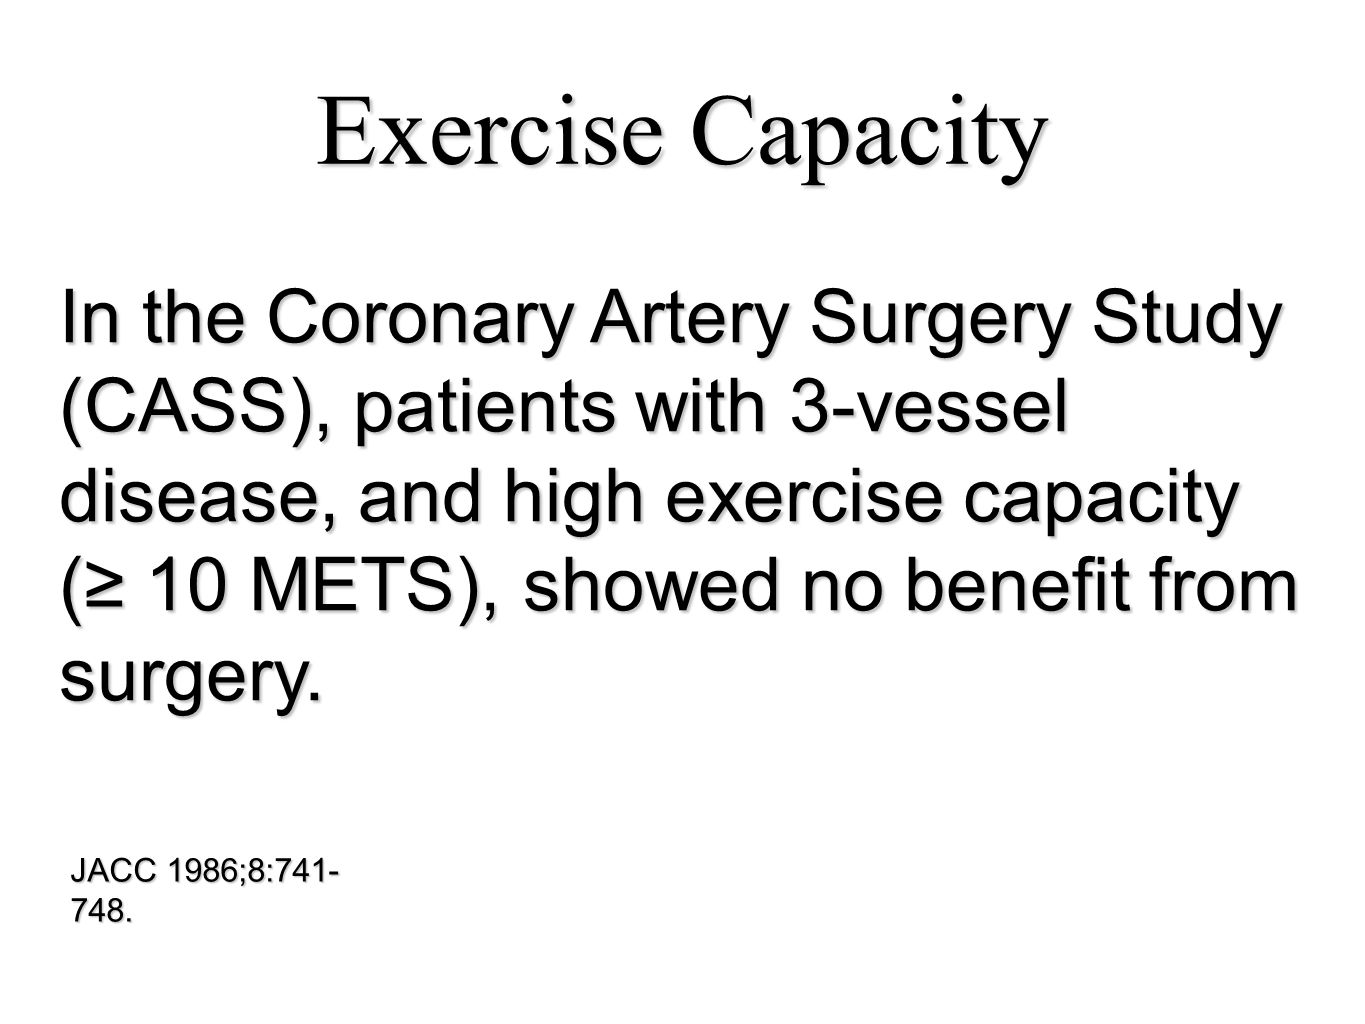 Exercise Capacity In the Coronary Artery Surgery Study (CASS), patients with 3-vessel disease, and high exercise capacity (≥ 10 METS), showed no benef